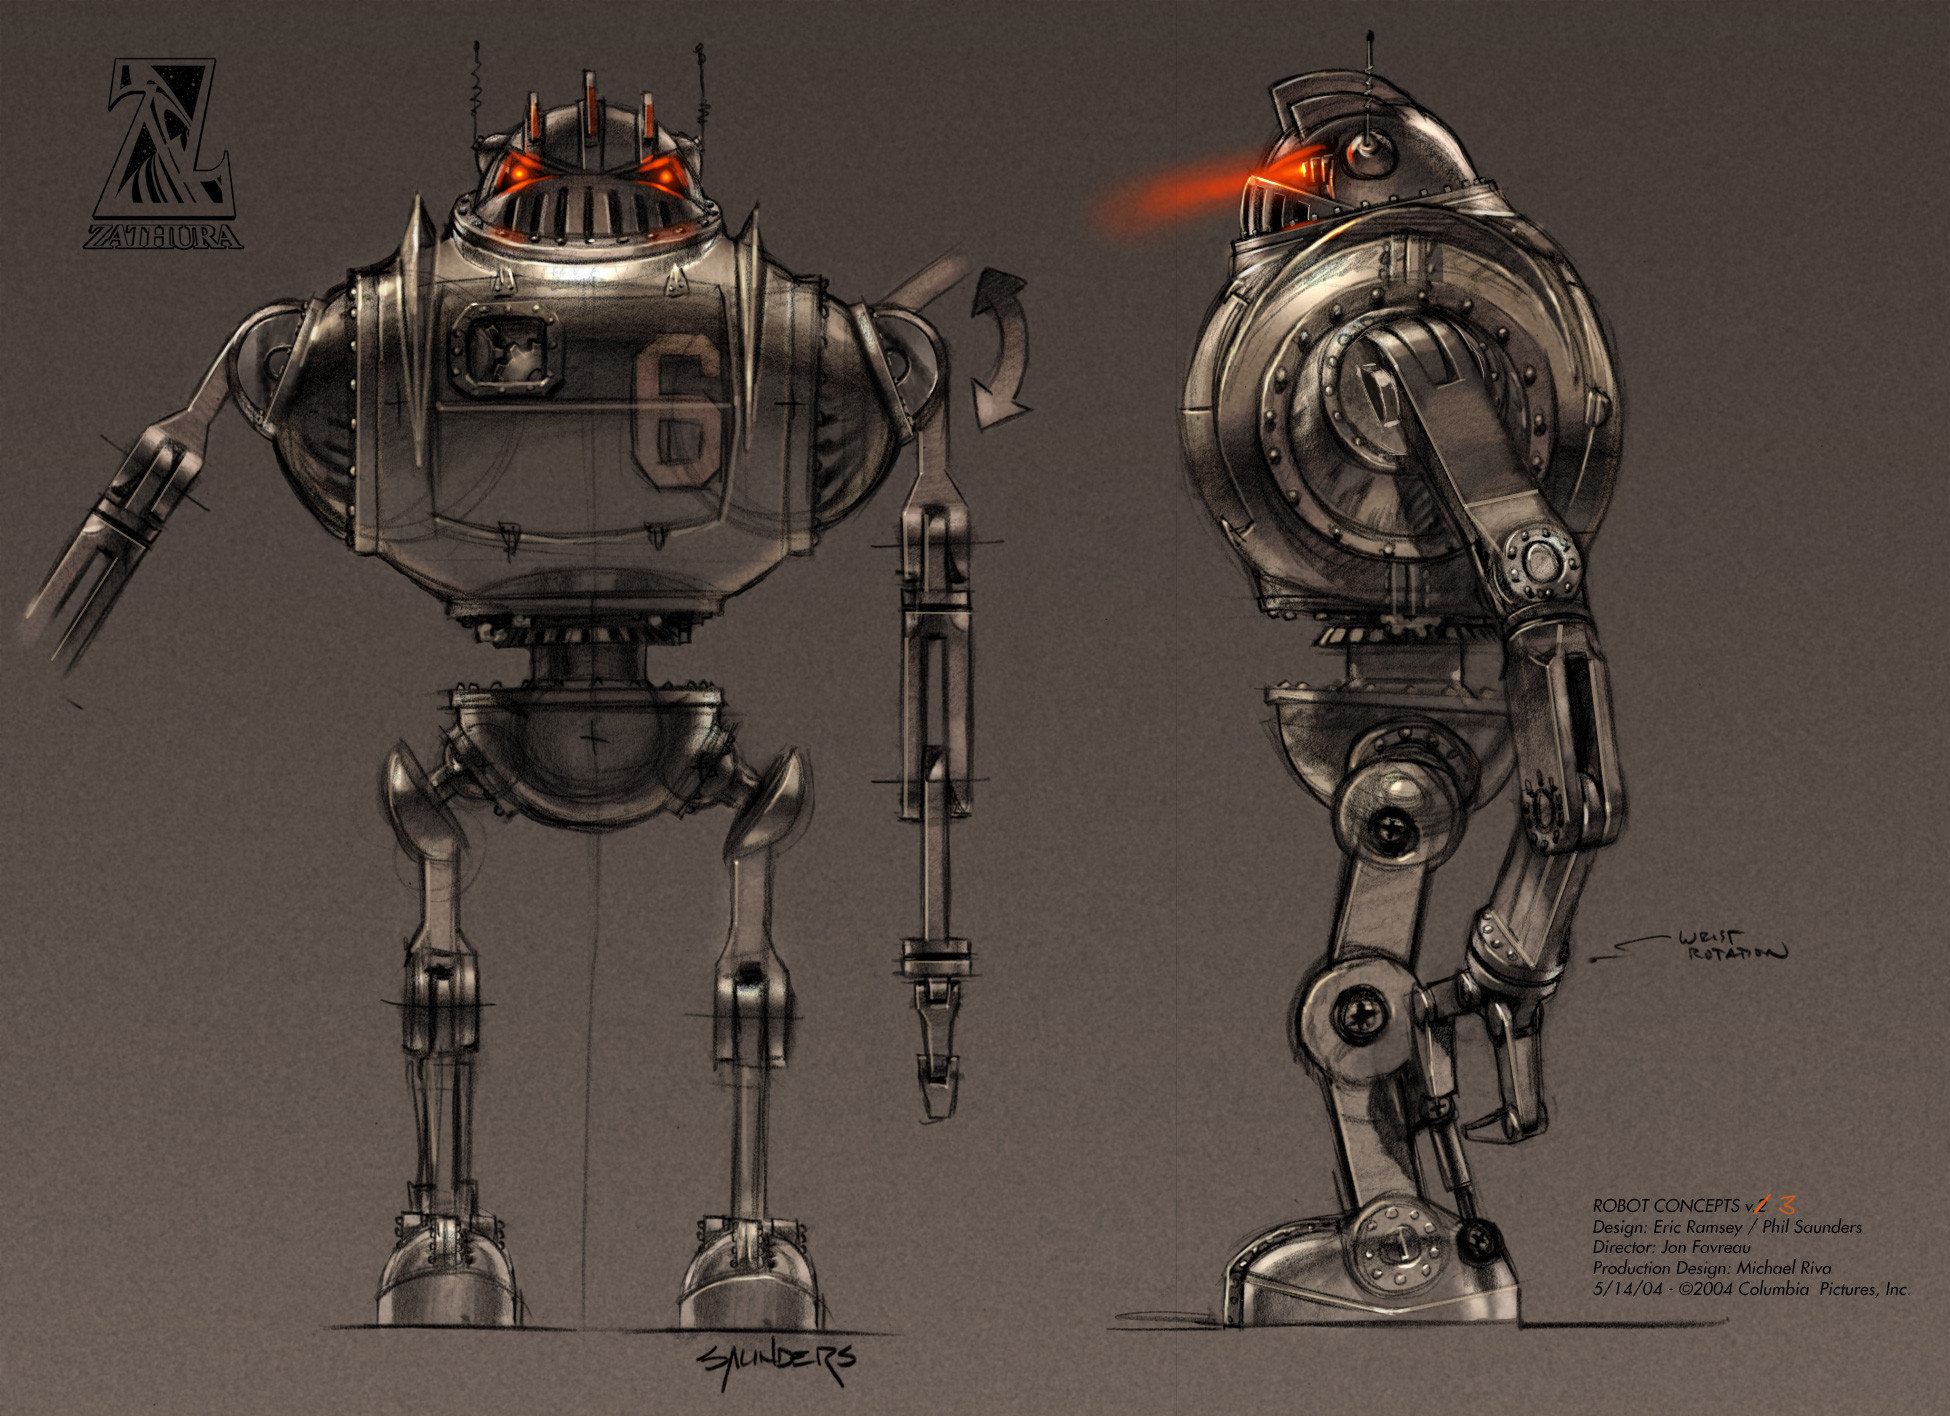 The final robot design.